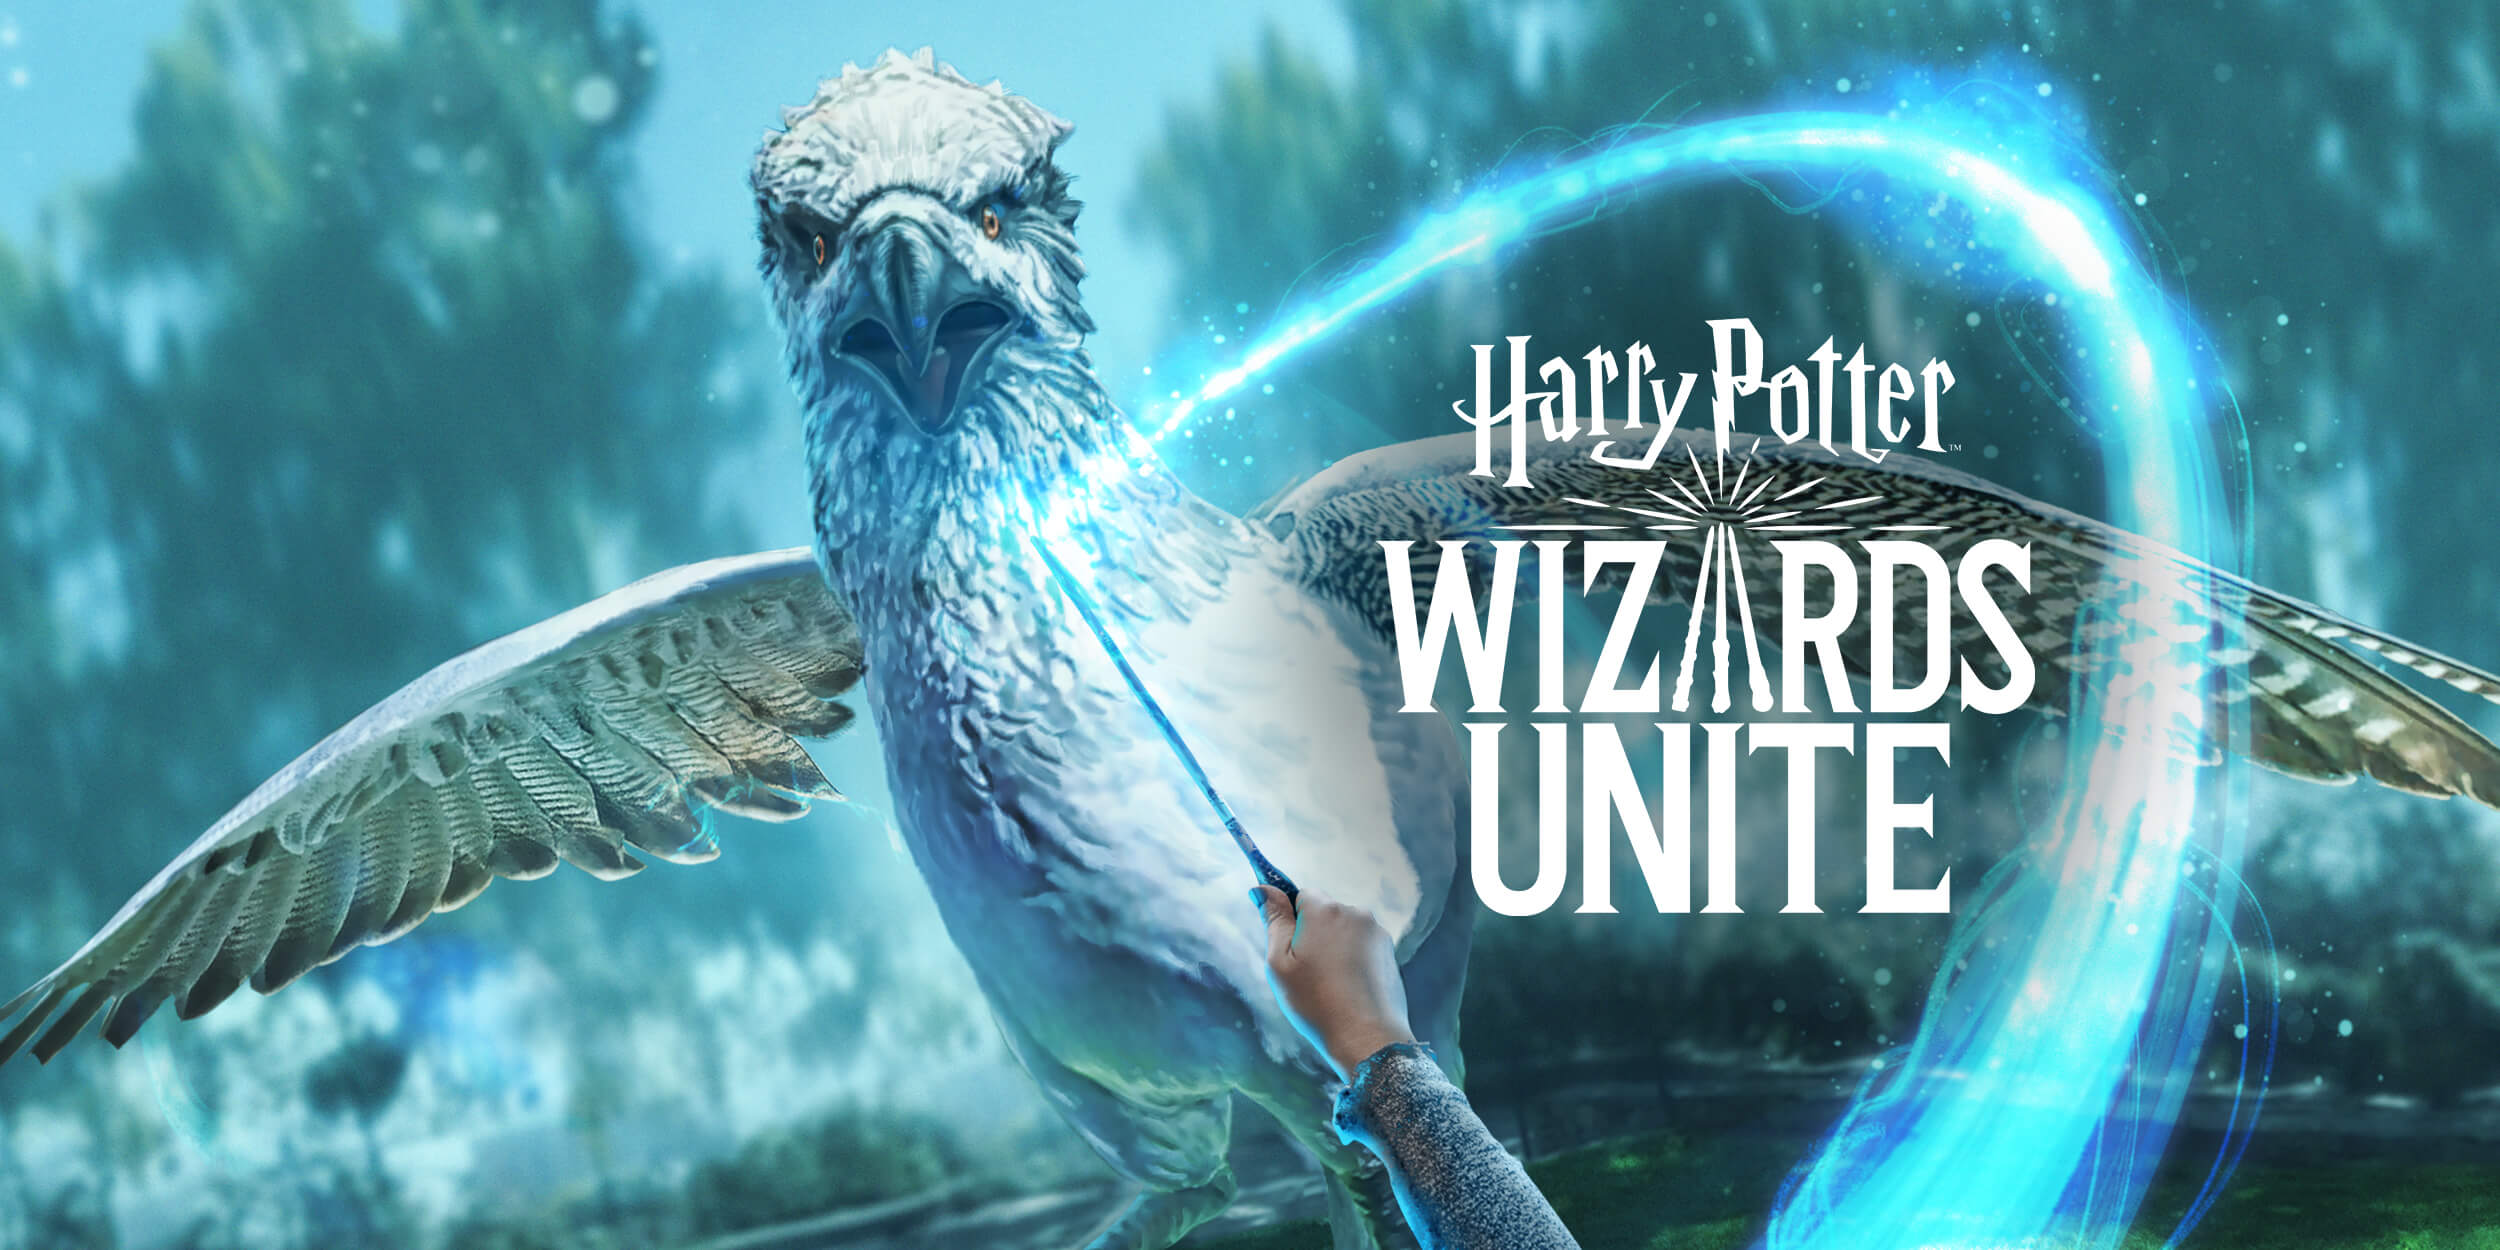 How to pre-register for Harry Potter: Wizards Unite